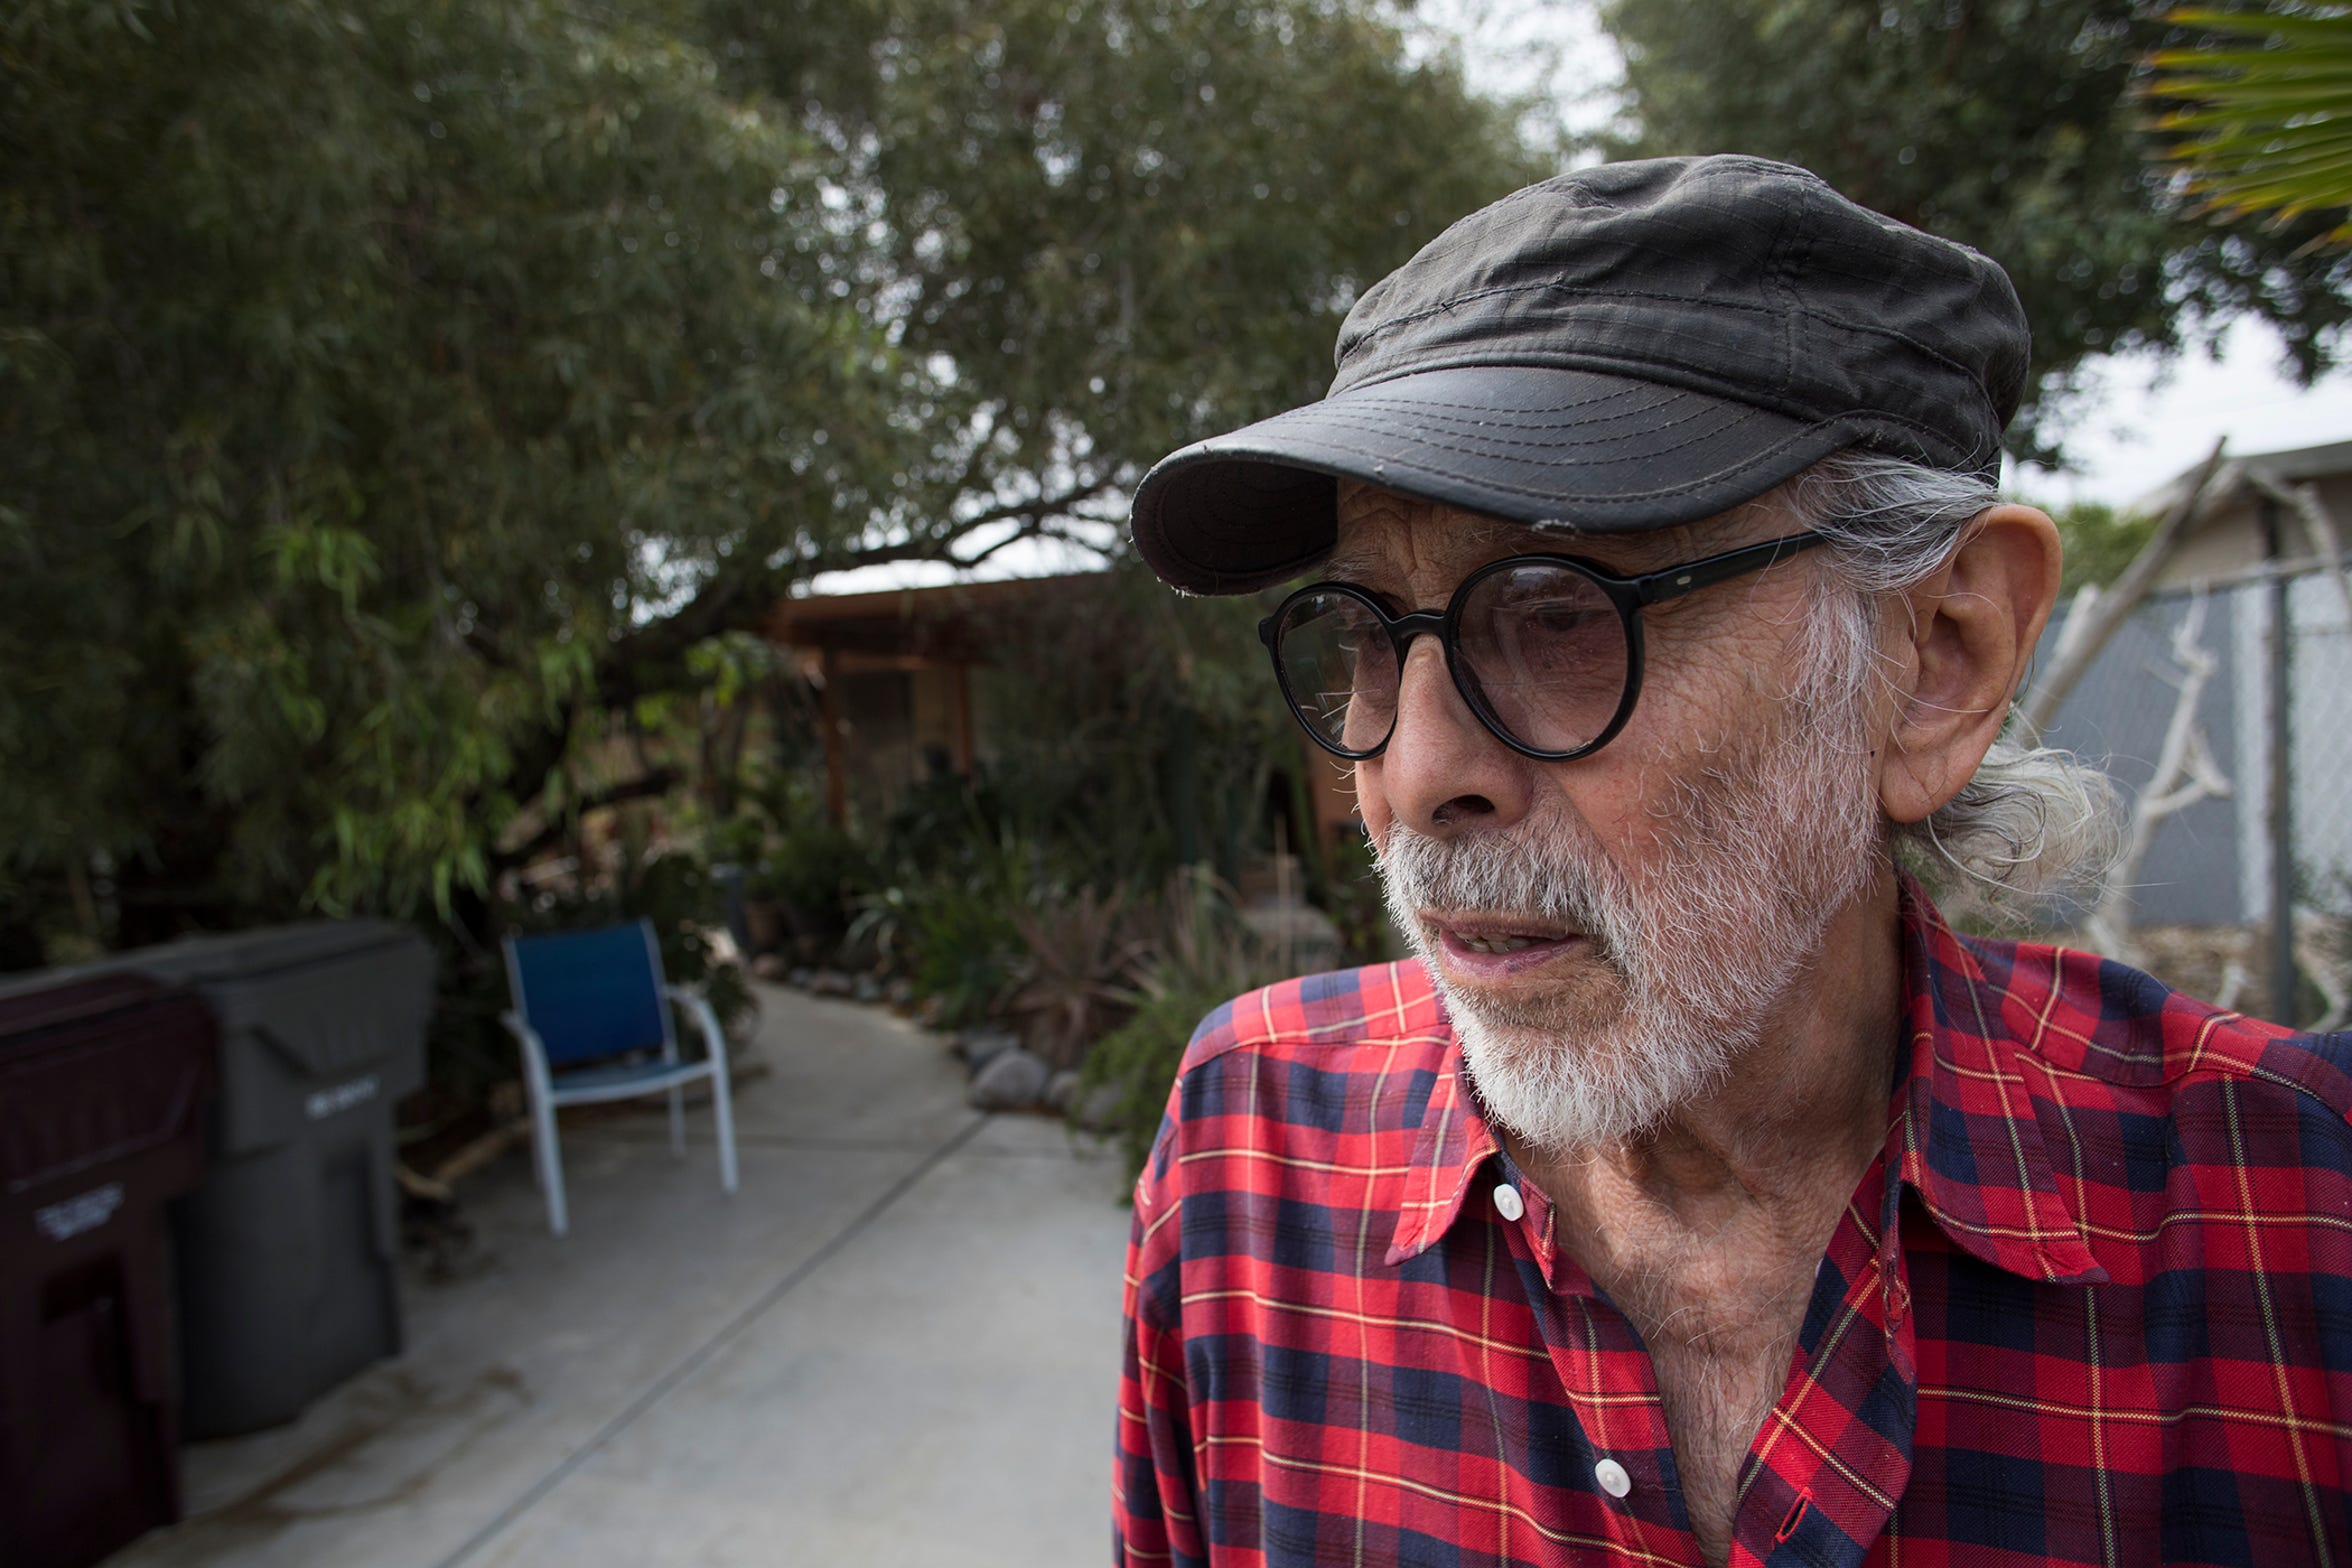 Edmund Dantez de Guerrero outside his home in Cathedral City, Calif., May 15, 2019. Dantez de Guerrero took out a reverse mortgage more than a decade ago but fell behind on his property taxes, defaulting on his mortgage.